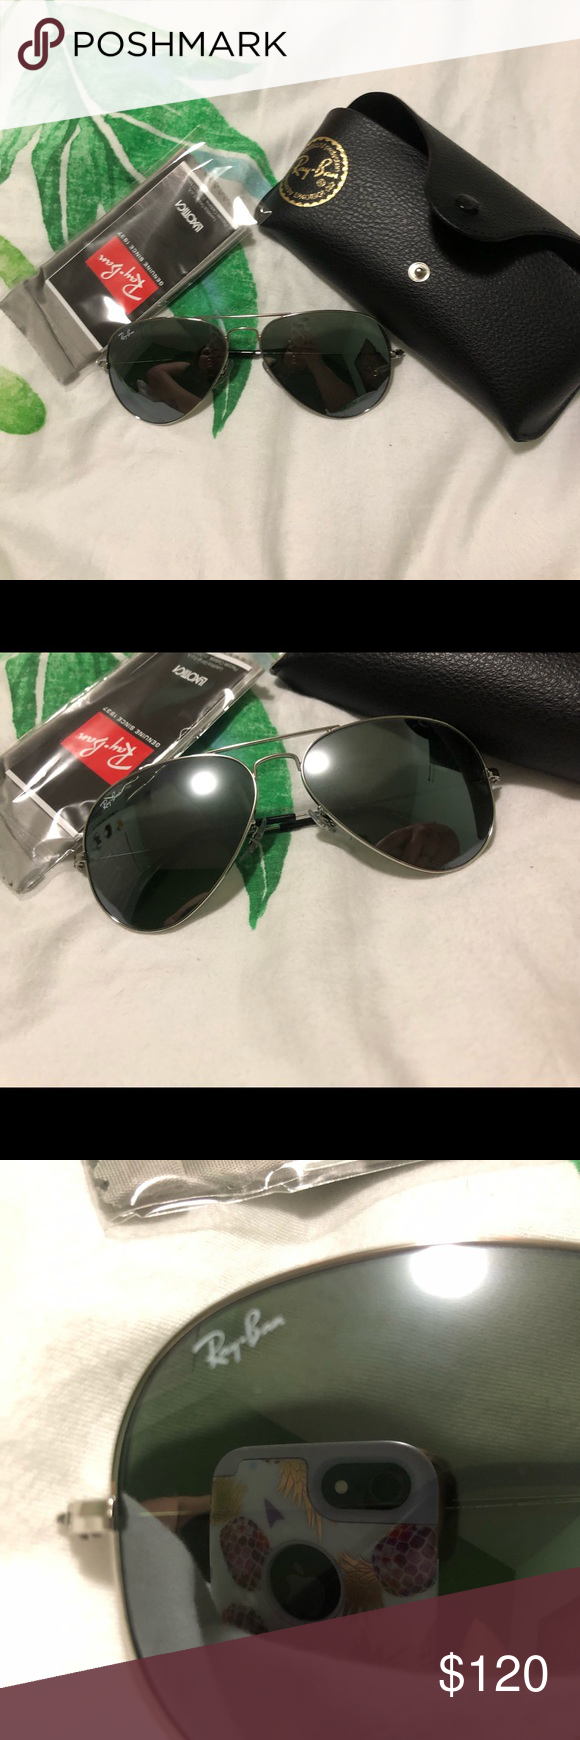 2eb0732f41fab685734bb2f72a04d913 - How Do You Know What Size Ray Bans To Get